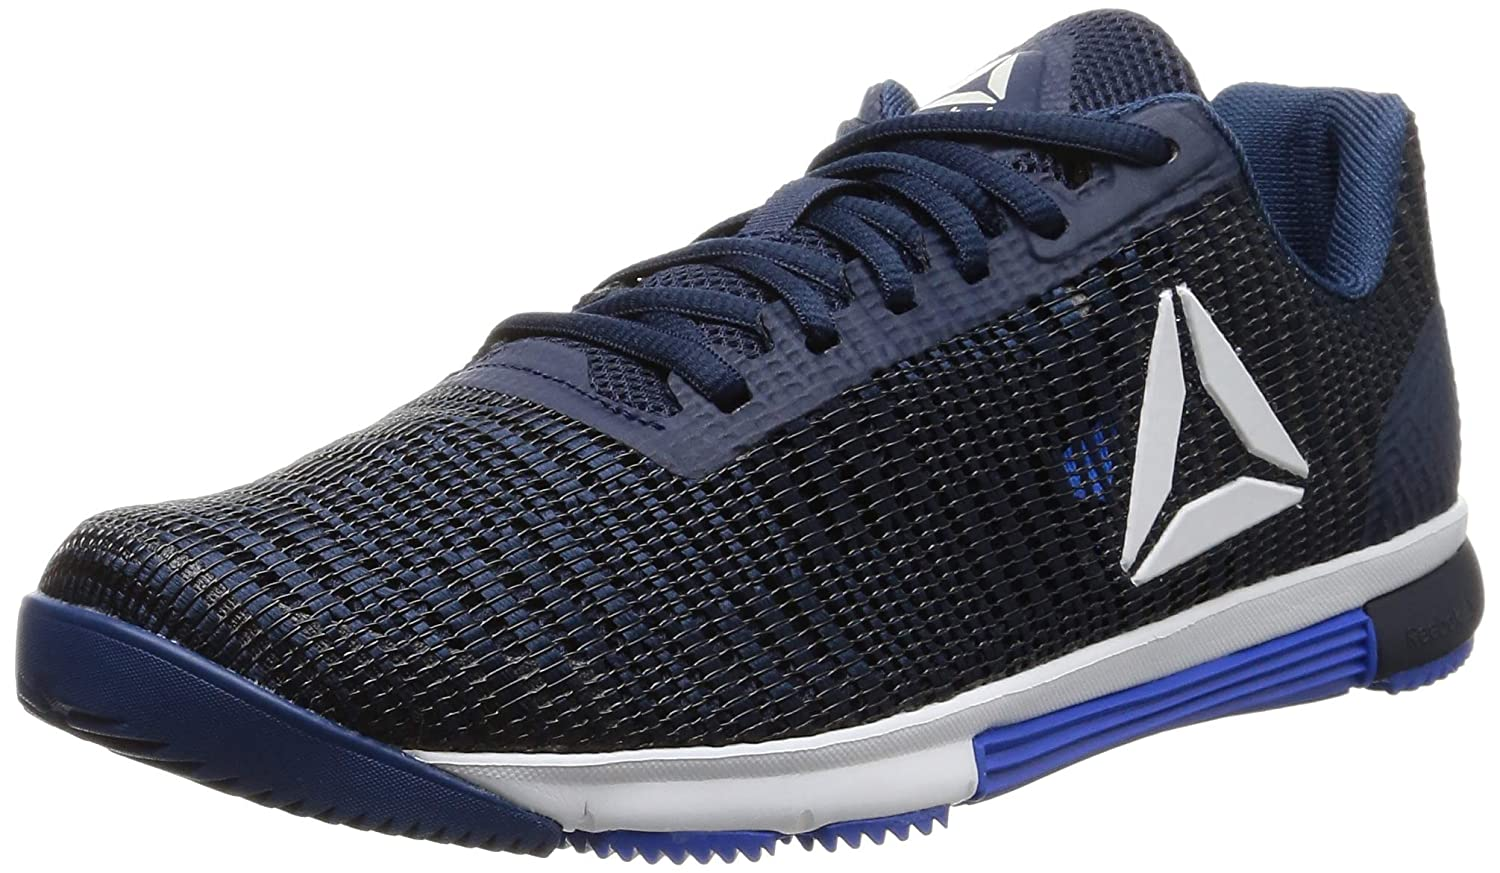 0ca181a87 Reebok Men s Speed Tr Flexweave Running Shoes  Buy Online at Low Prices in  India - Amazon.in